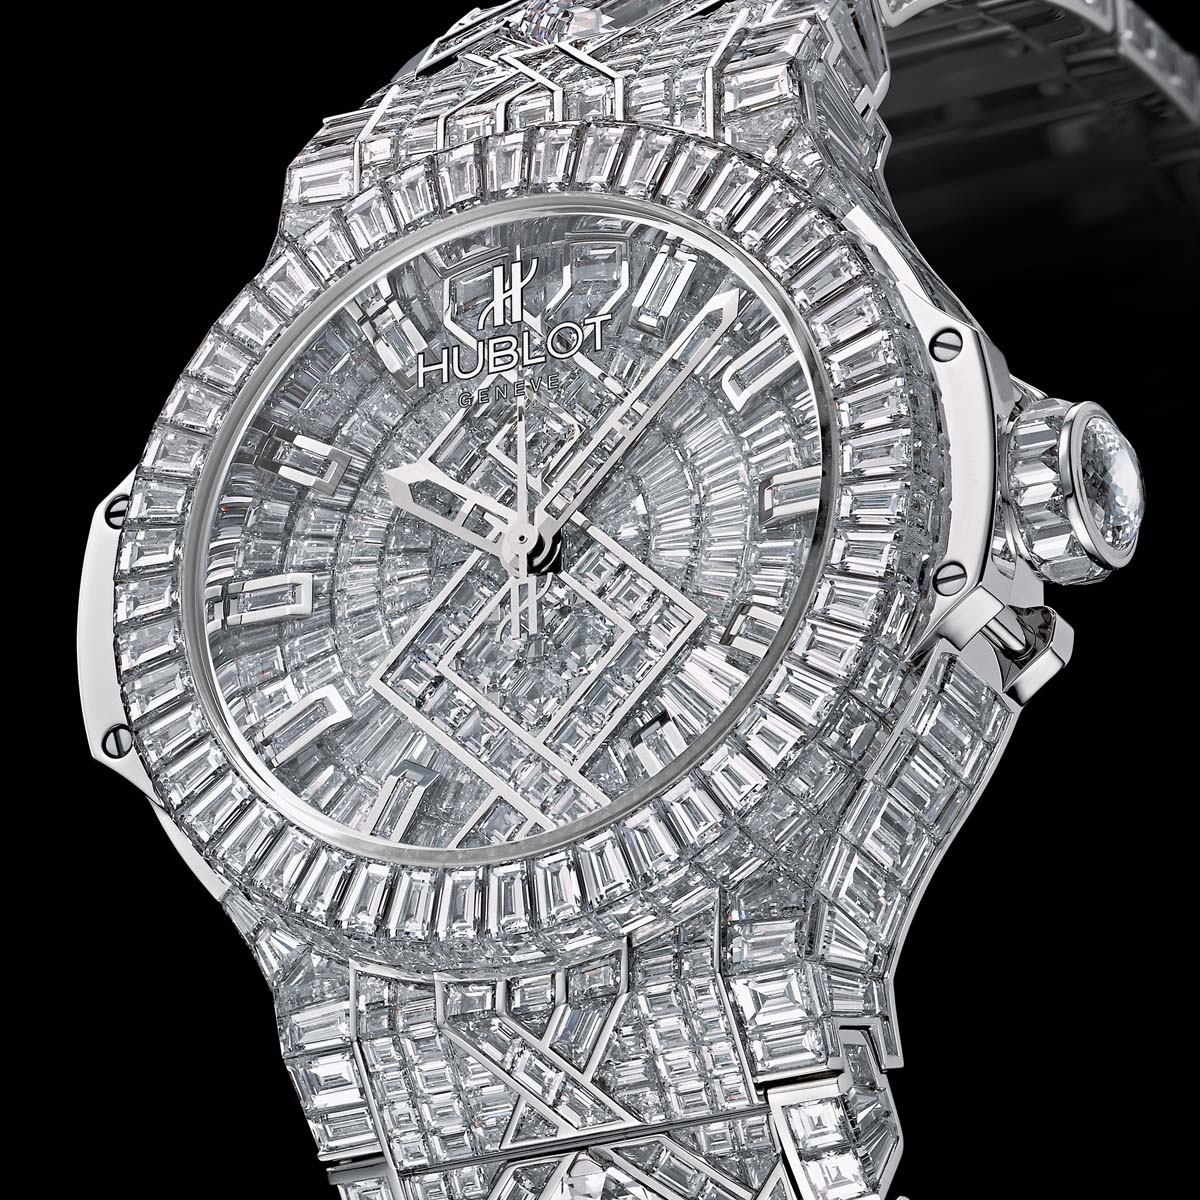 5 Buys Million†- Jay-z Beyonce Quote Rumors €œ Hublot Watch Photo The